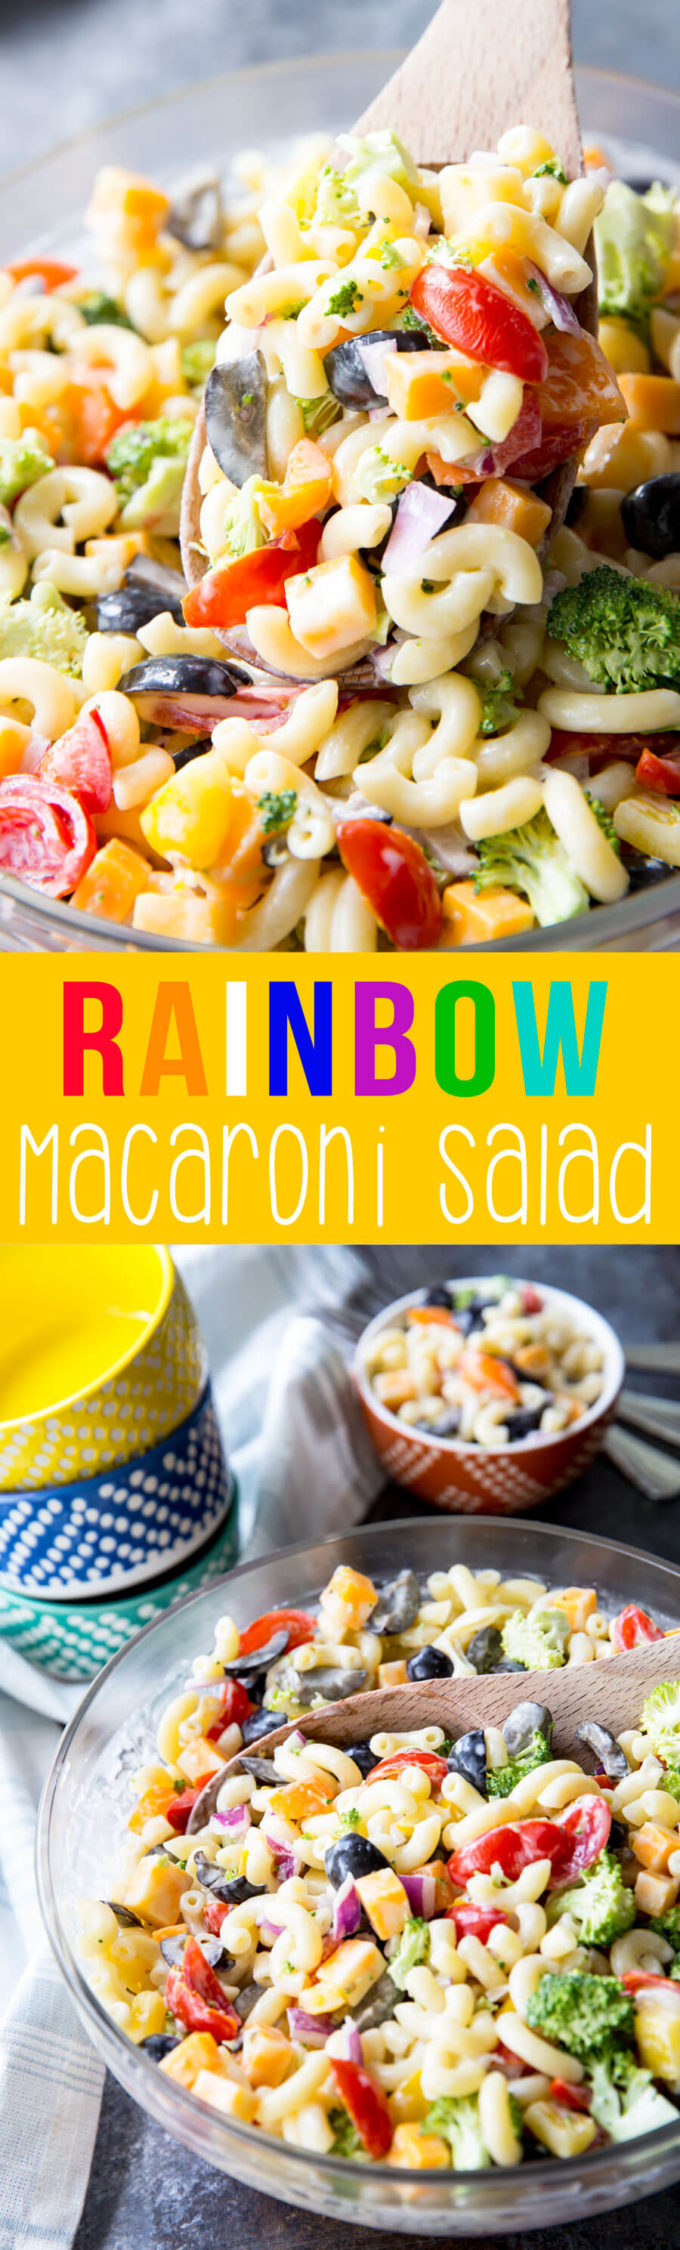 Rainbow Macaroni Salad: This pasta salad offers crunchy veggies, chunks of cheese, olives, and is dressed in a light, slightly tangy, slightly sweet dressing. The perfect summer side salad.